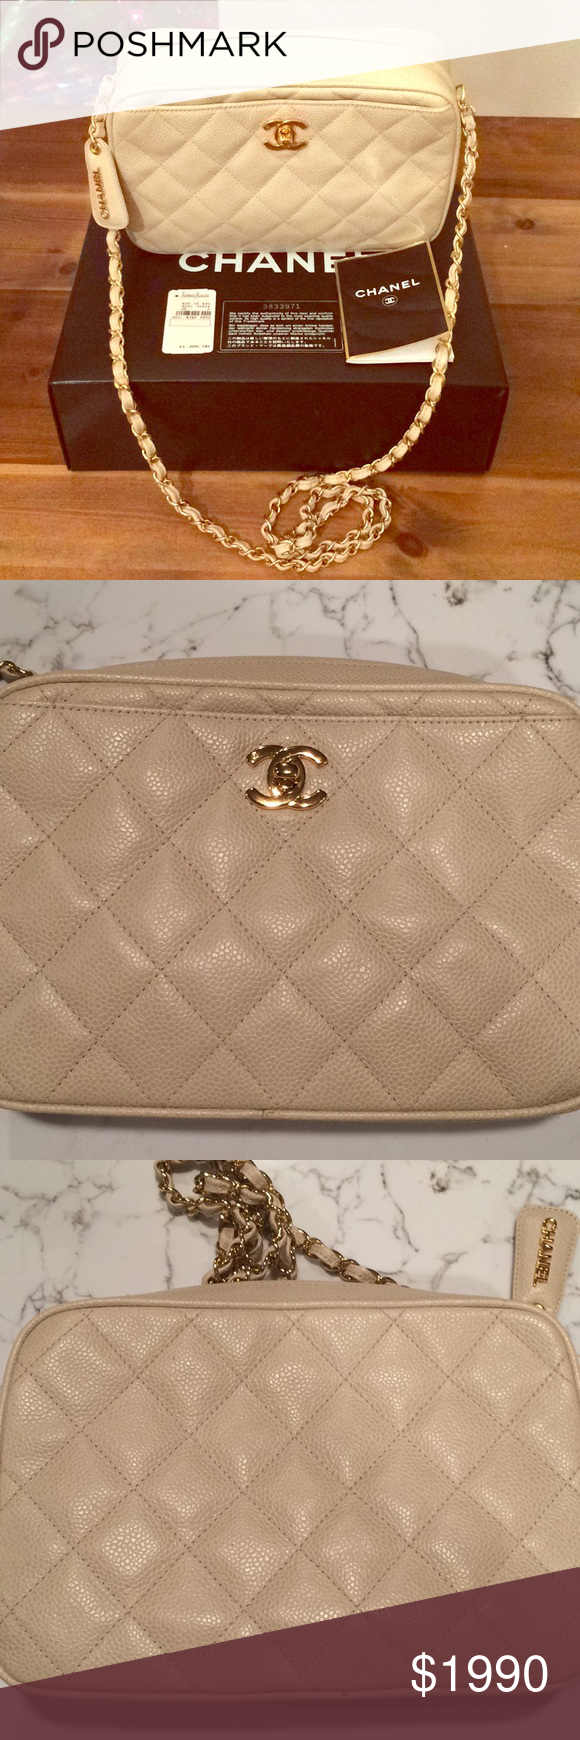 818d4e562bb4e0 Authentic Chanel Caviar Skin Bag GHW Still have it's original tag, dust bag,  box, authentication card. Can be worn as a crossbody or shoulder bag.